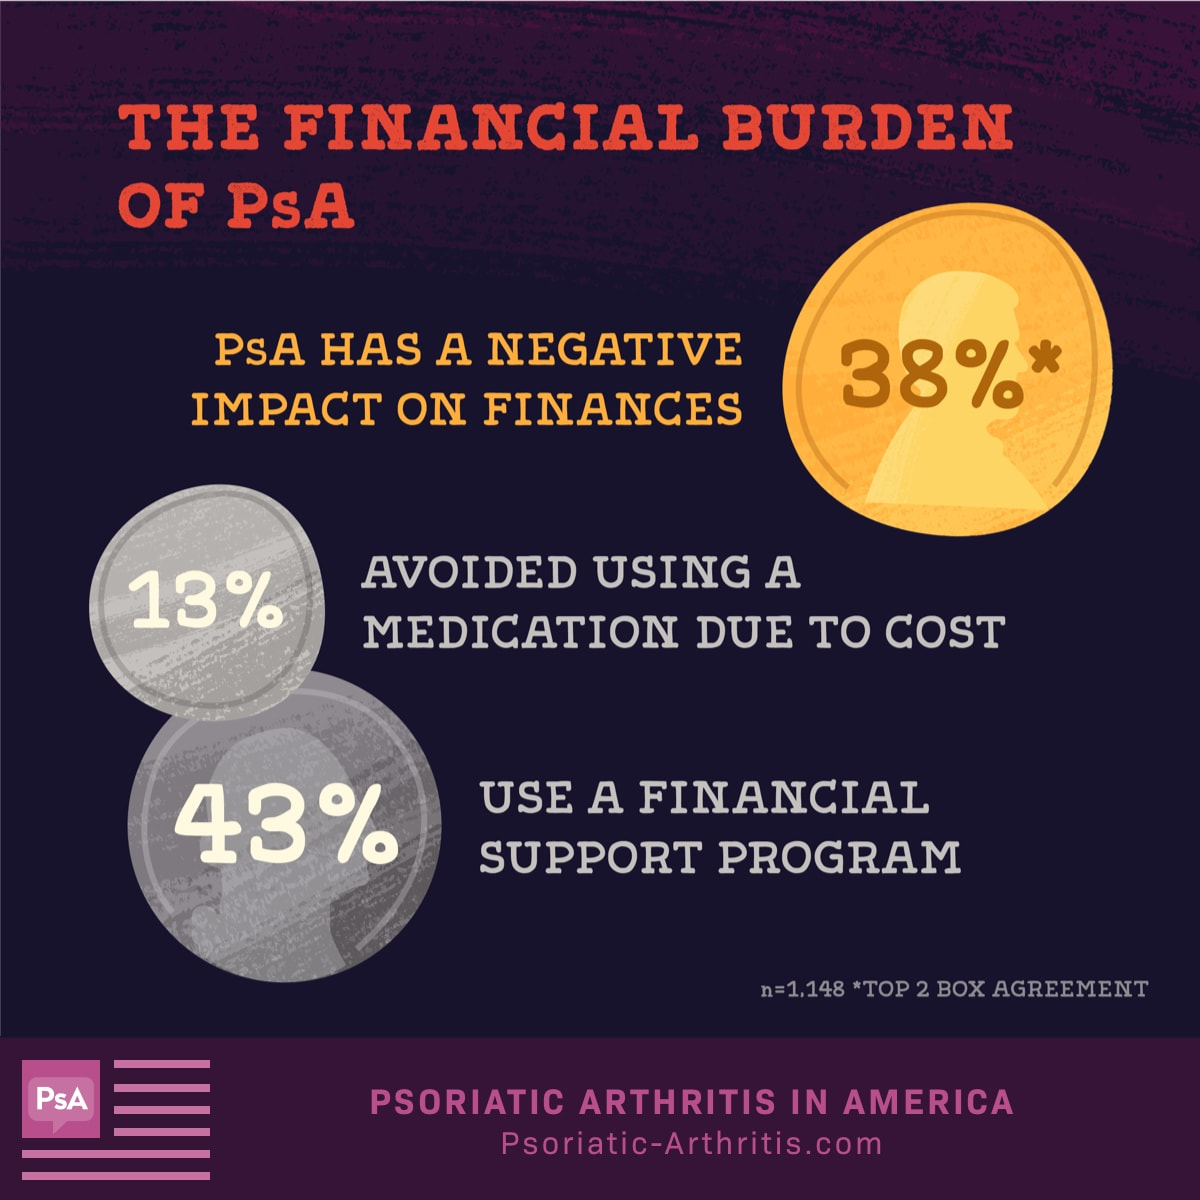 38% feel PsA has a negative impact on finances, 43% use a financial support program and 13% avoided using a medication due to cost.